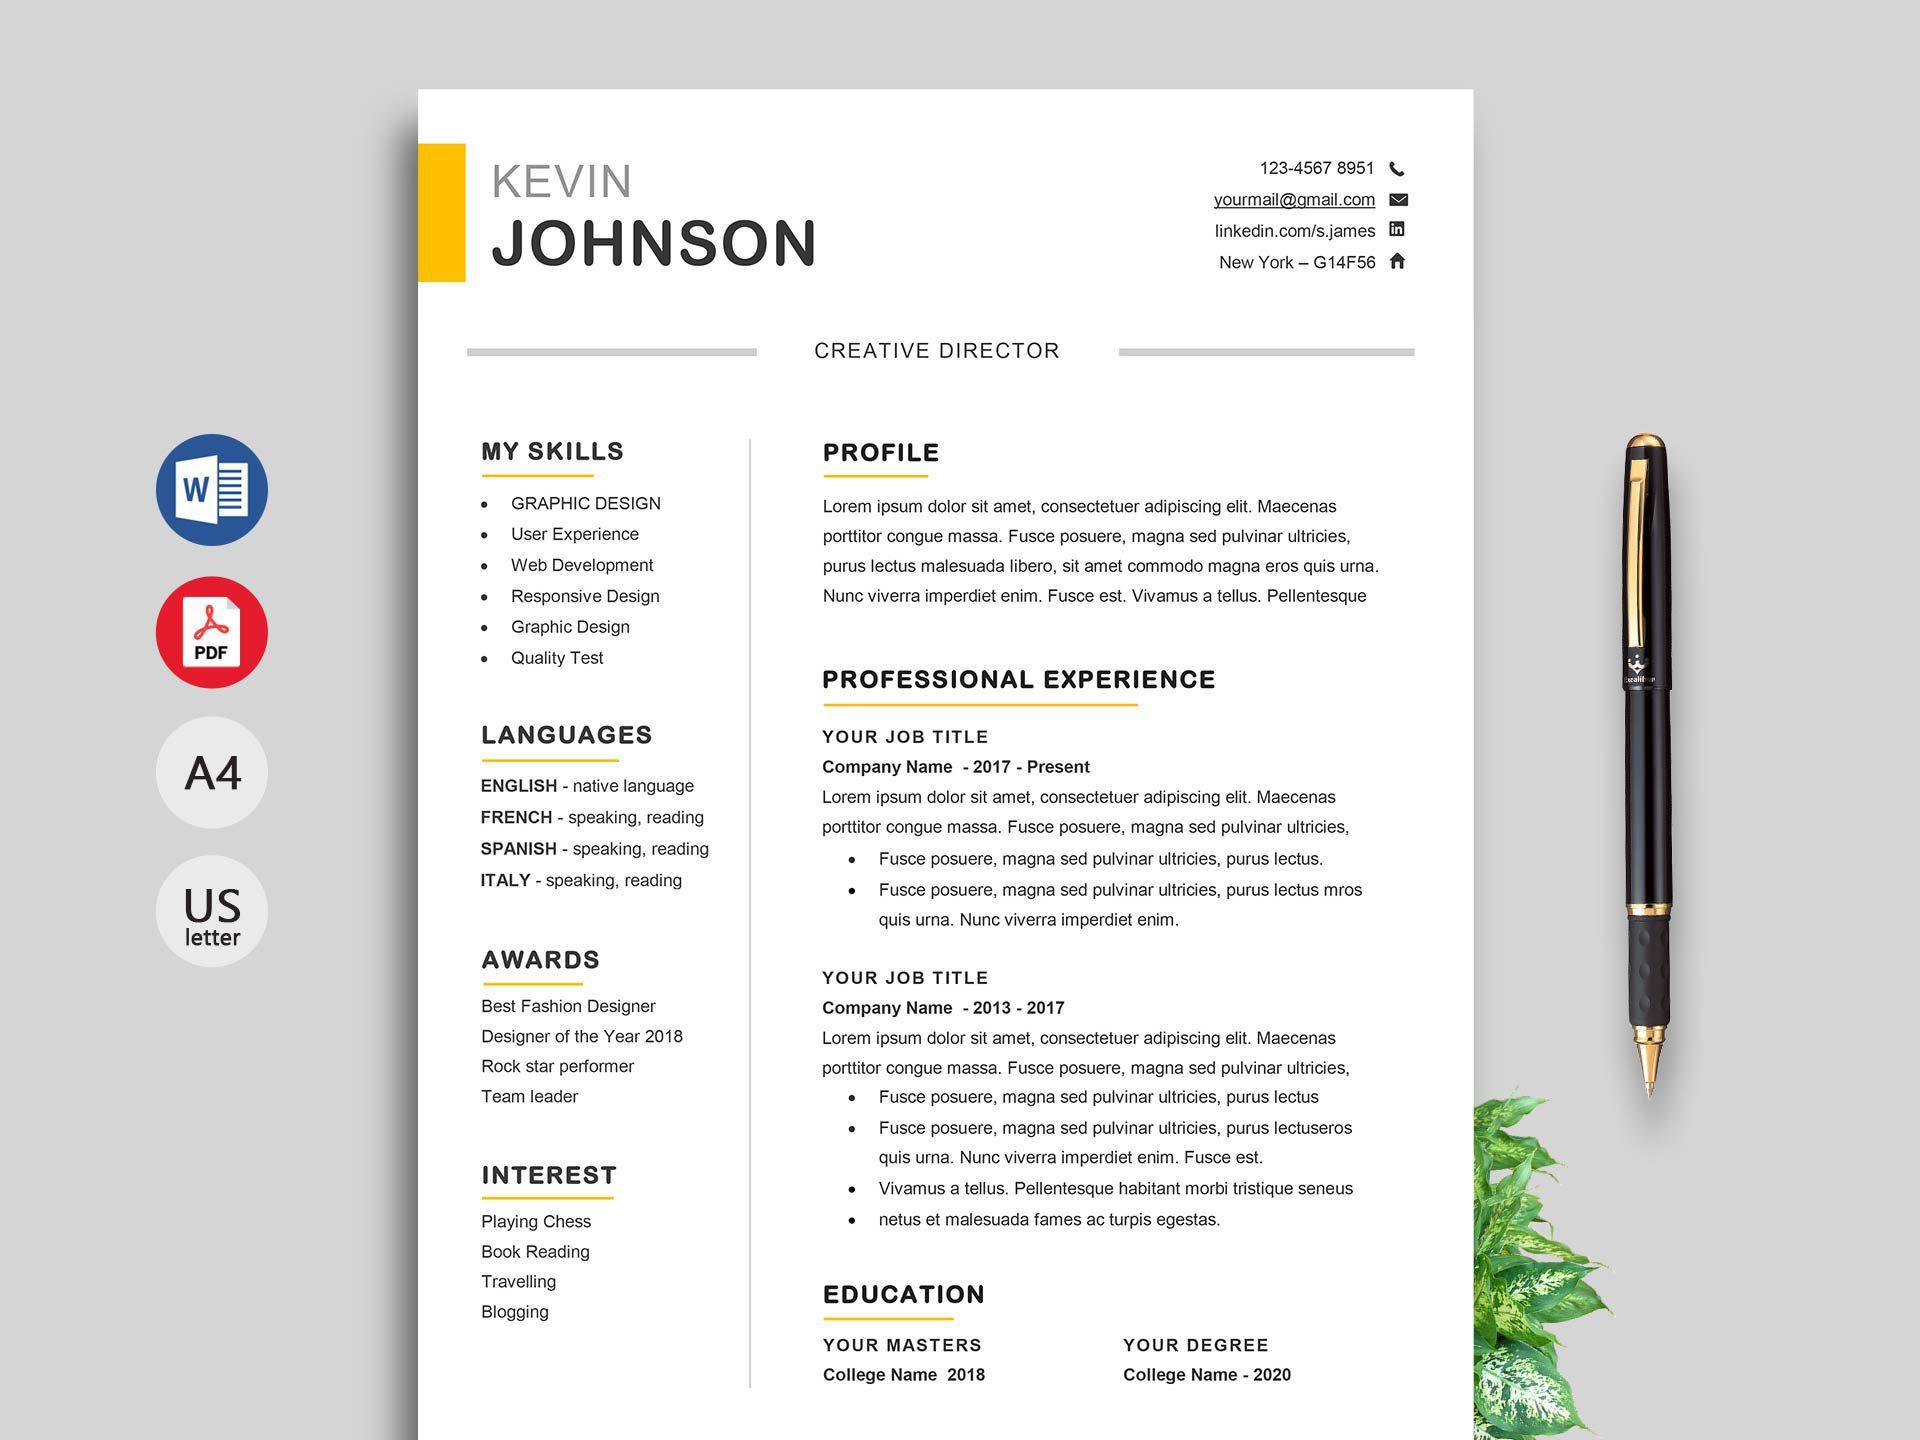 004 Awesome Resume Template M Word 2020 Concept  Free MicrosoftFull